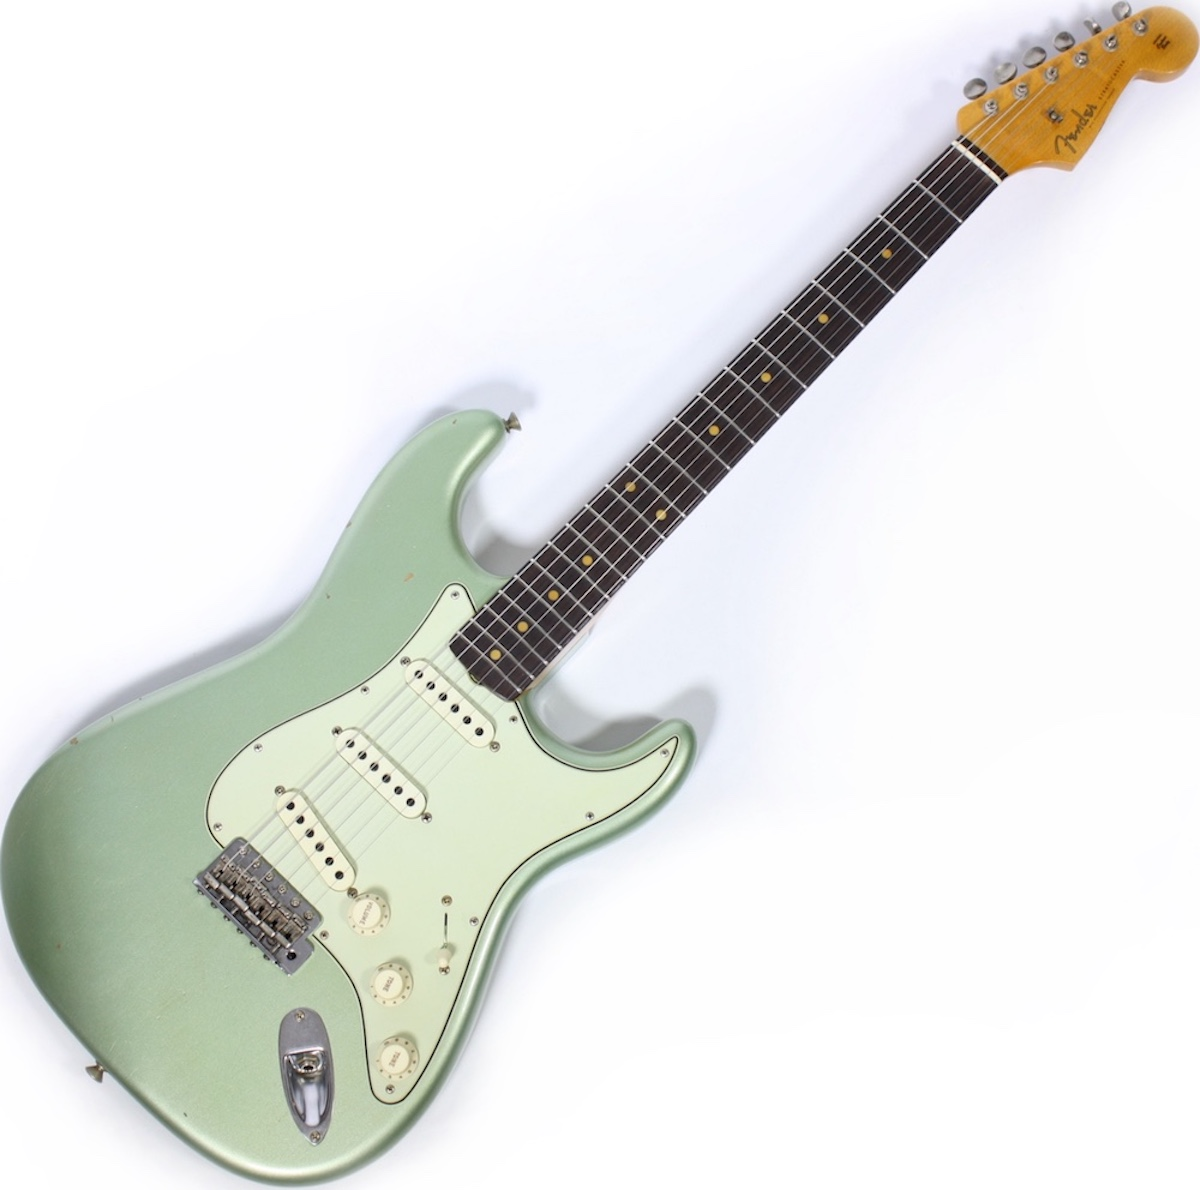 2019 NAMM Fender Custom Shop LTD Edition 59 Journeyman